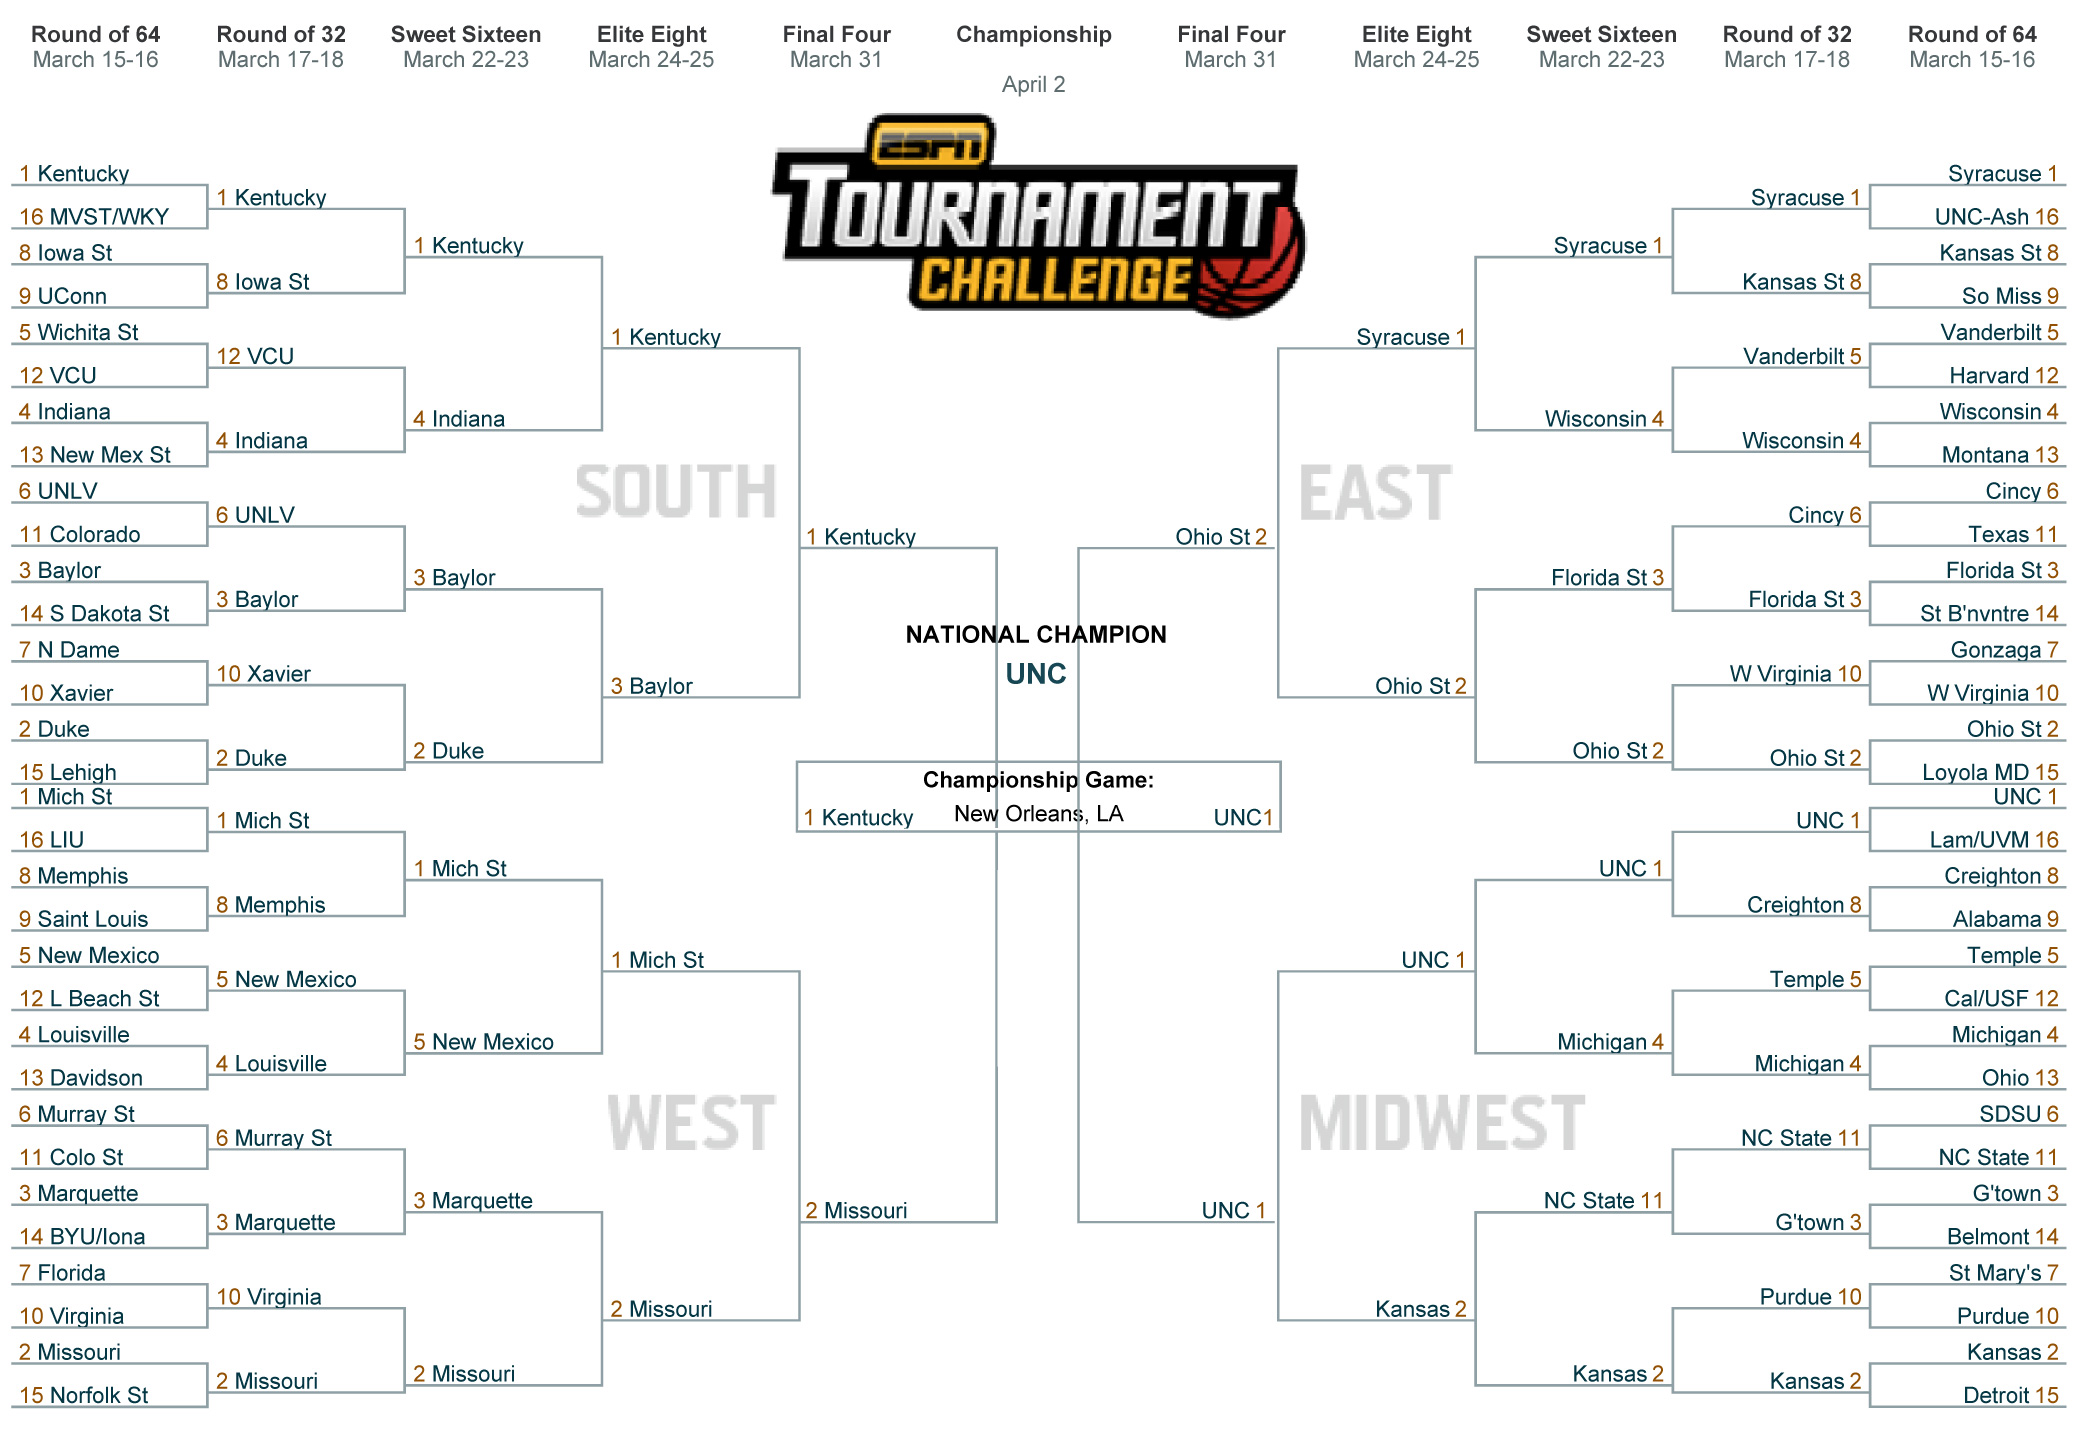 President Obama's 2012 NCAA Tournament Bracket (March 13, 2012)